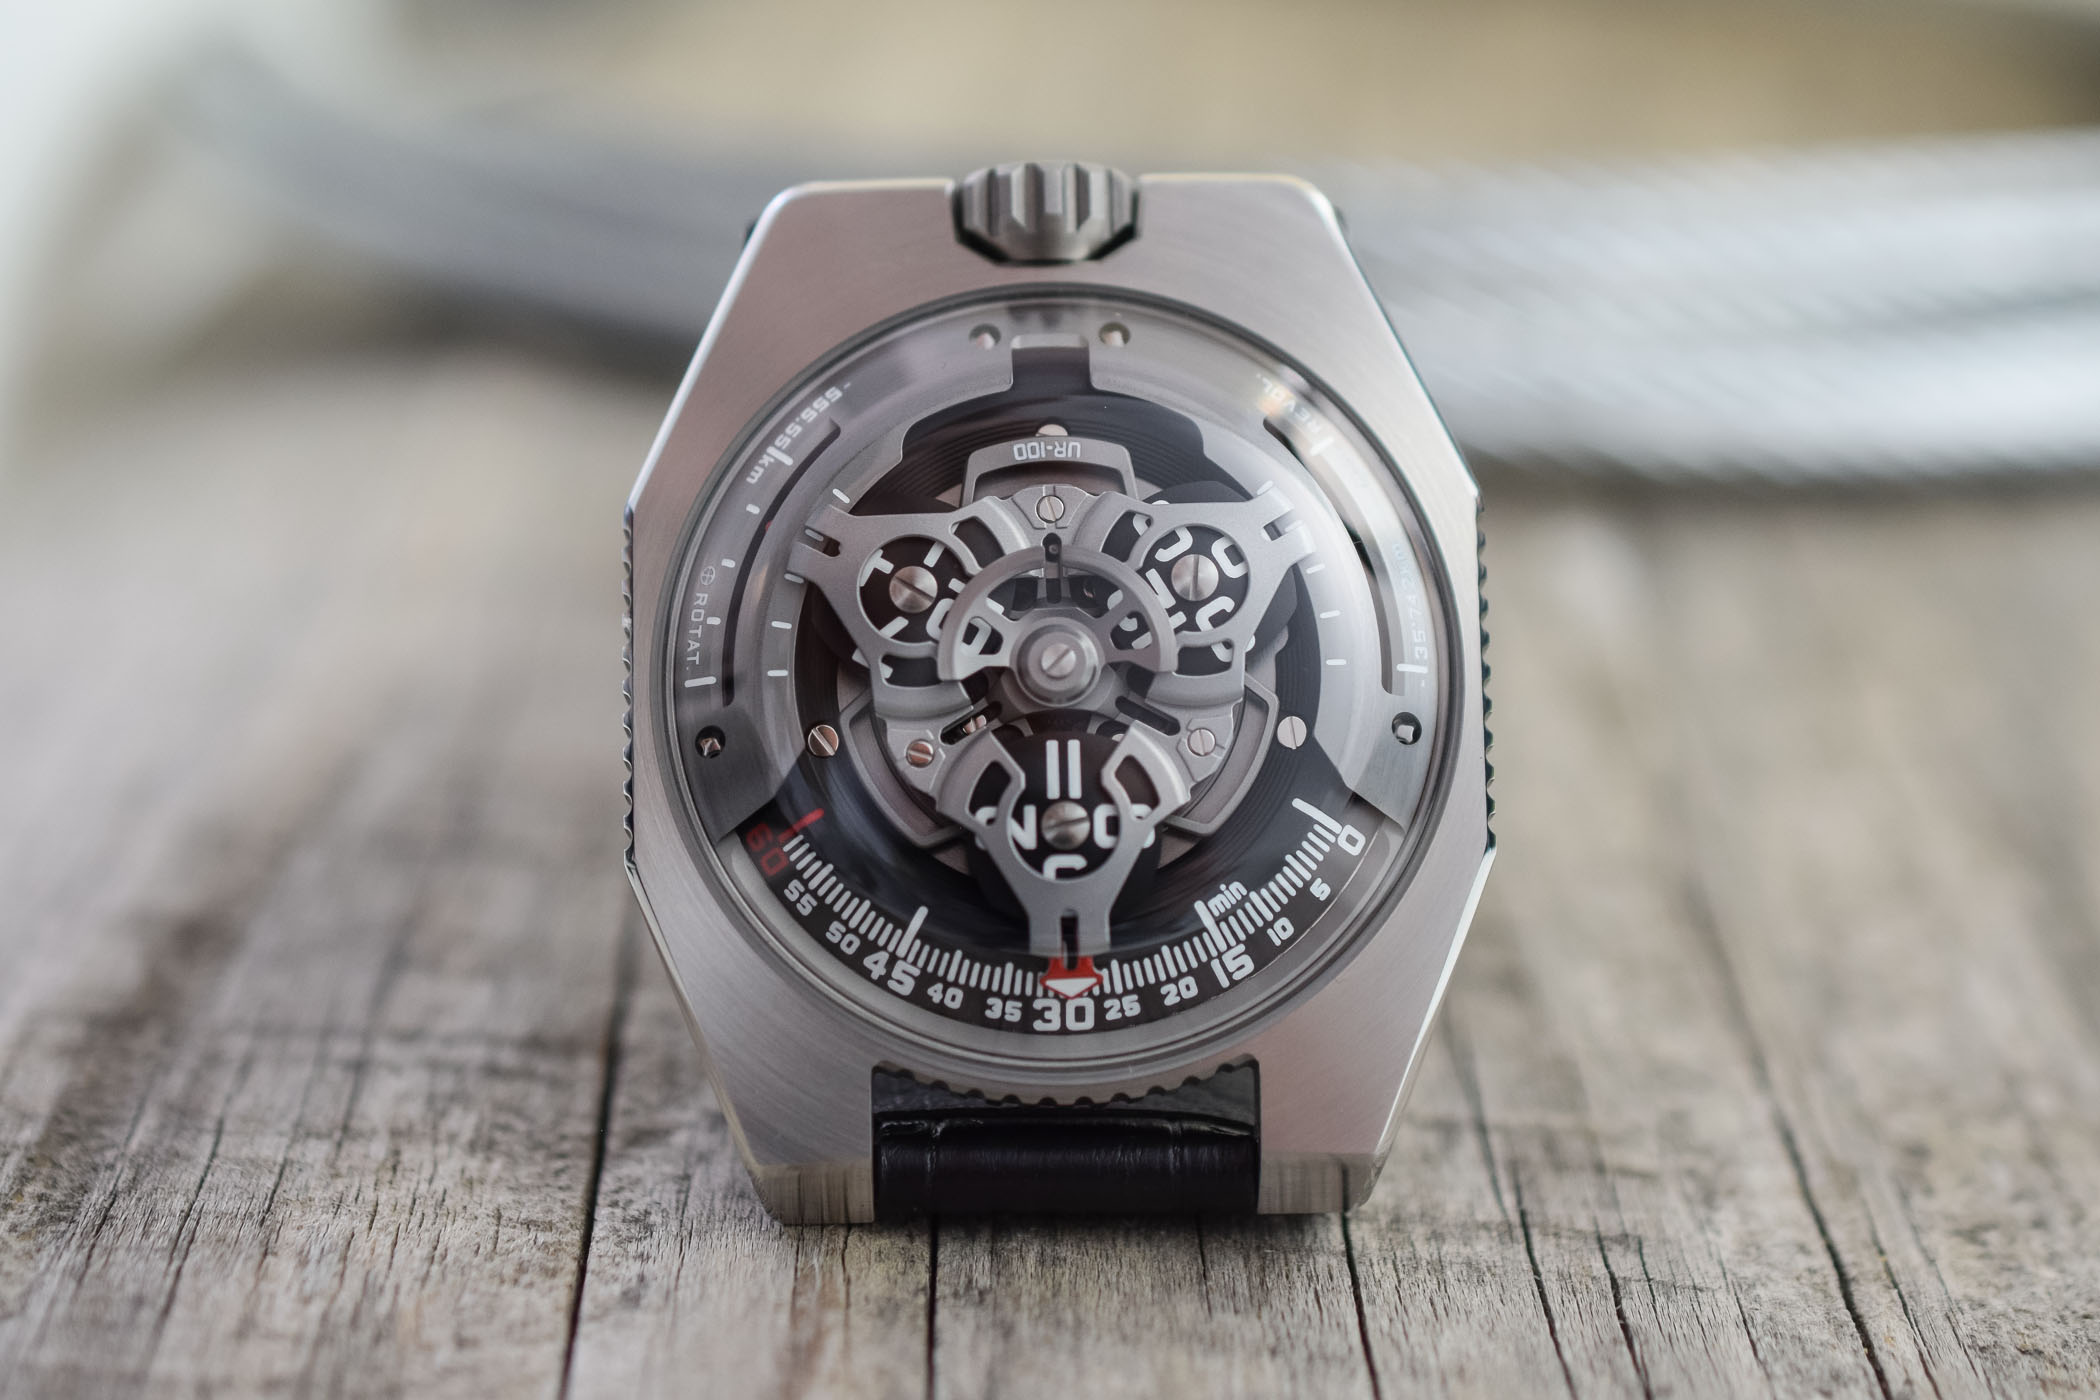 https://k8q7r7a2.stackpathcdn.com/wp-content/uploads/2019/09/URWERK-UR-100-SpaceTime-Review-7.jpg